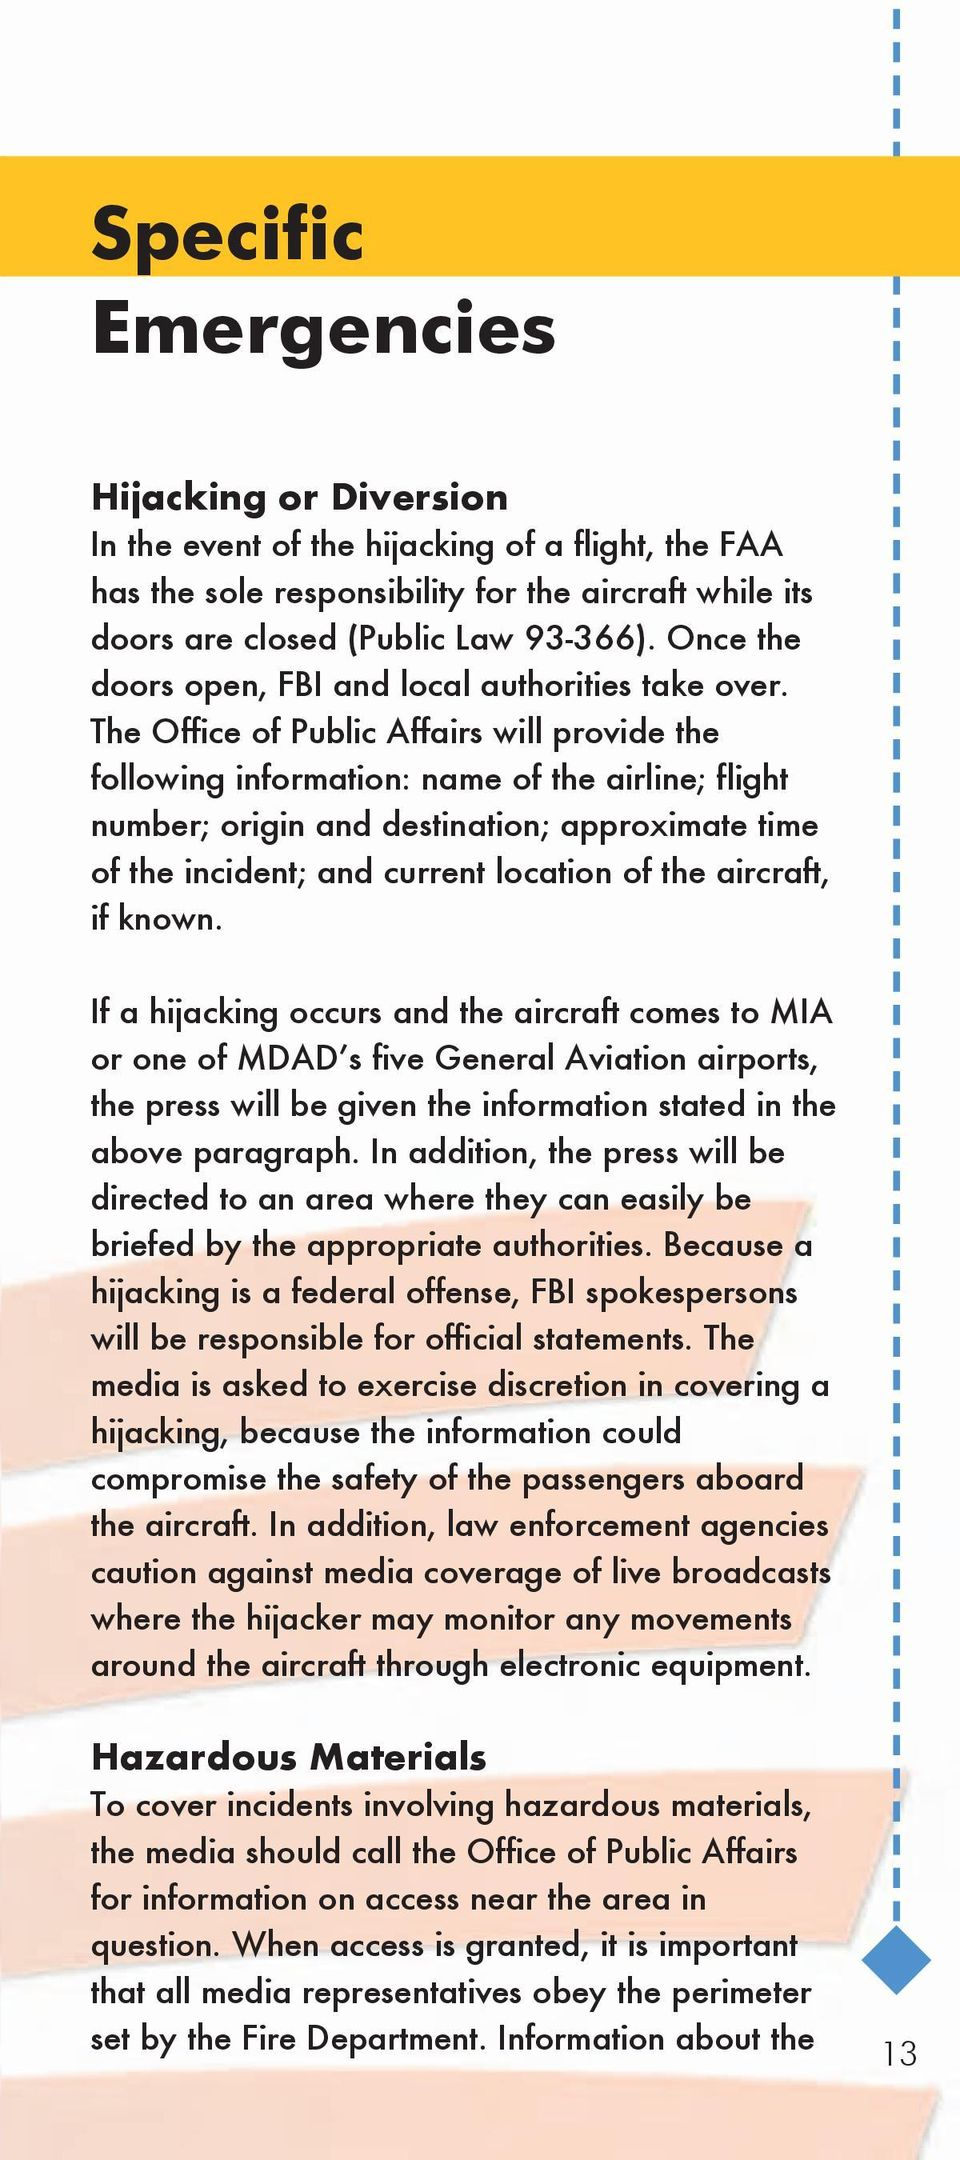 The Office of Public Affairs will provide the following information: name of the airline; flight number; origin and destination; approximate time of the incident; and current location of the